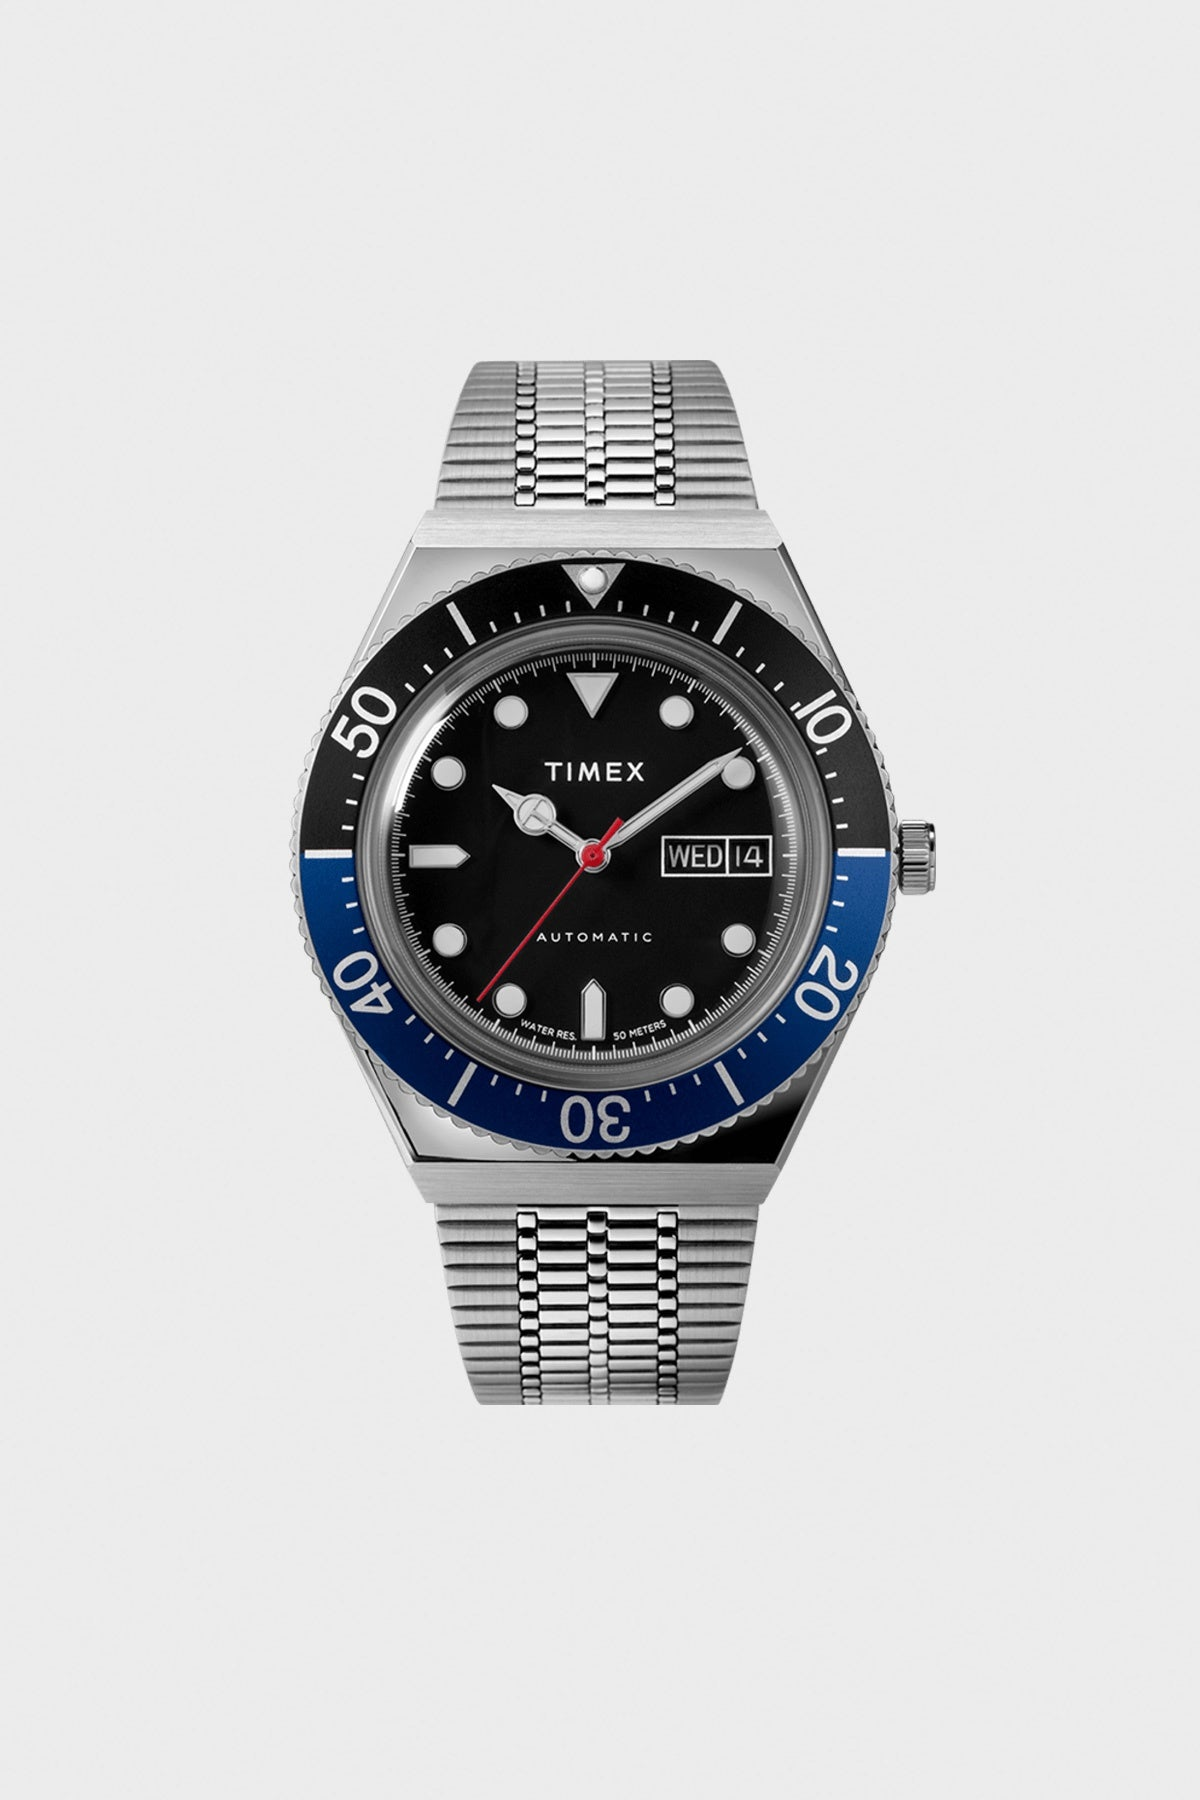 Timex - M79 Automatic 40mm Stainless Steel Bracelet Watch - Canoe Club